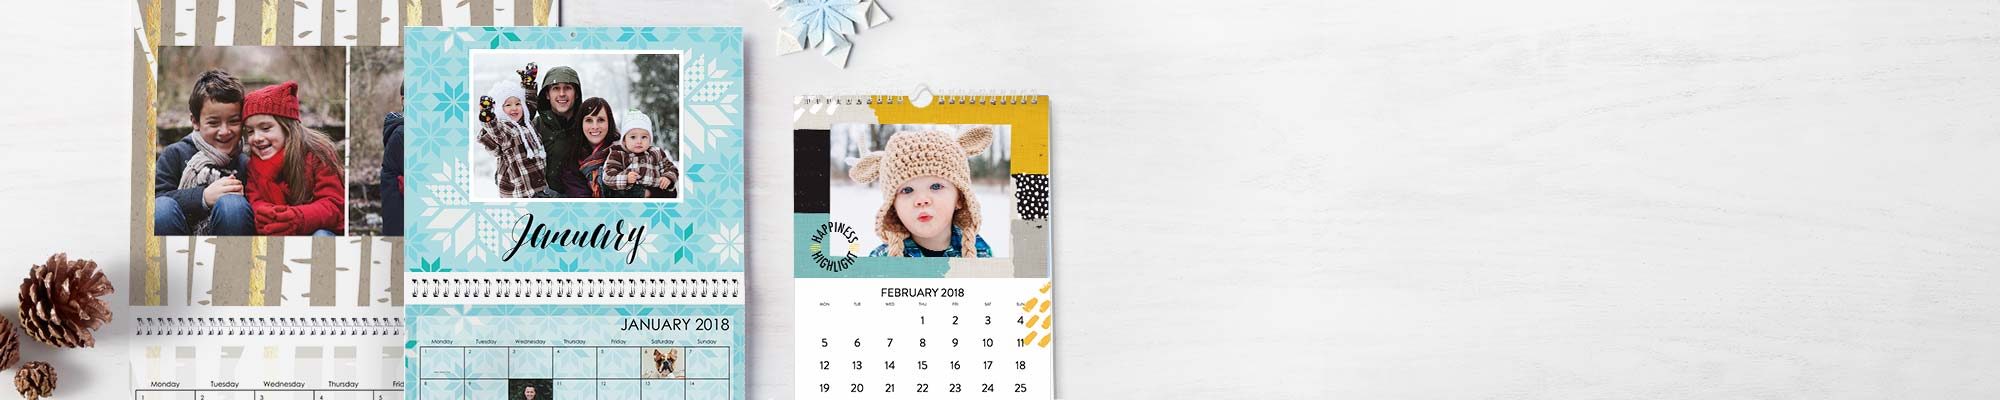 2018 Personalised Calendars Enjoy 365 days of your favourite photos personalised with new fonts, designs and backgrounds.